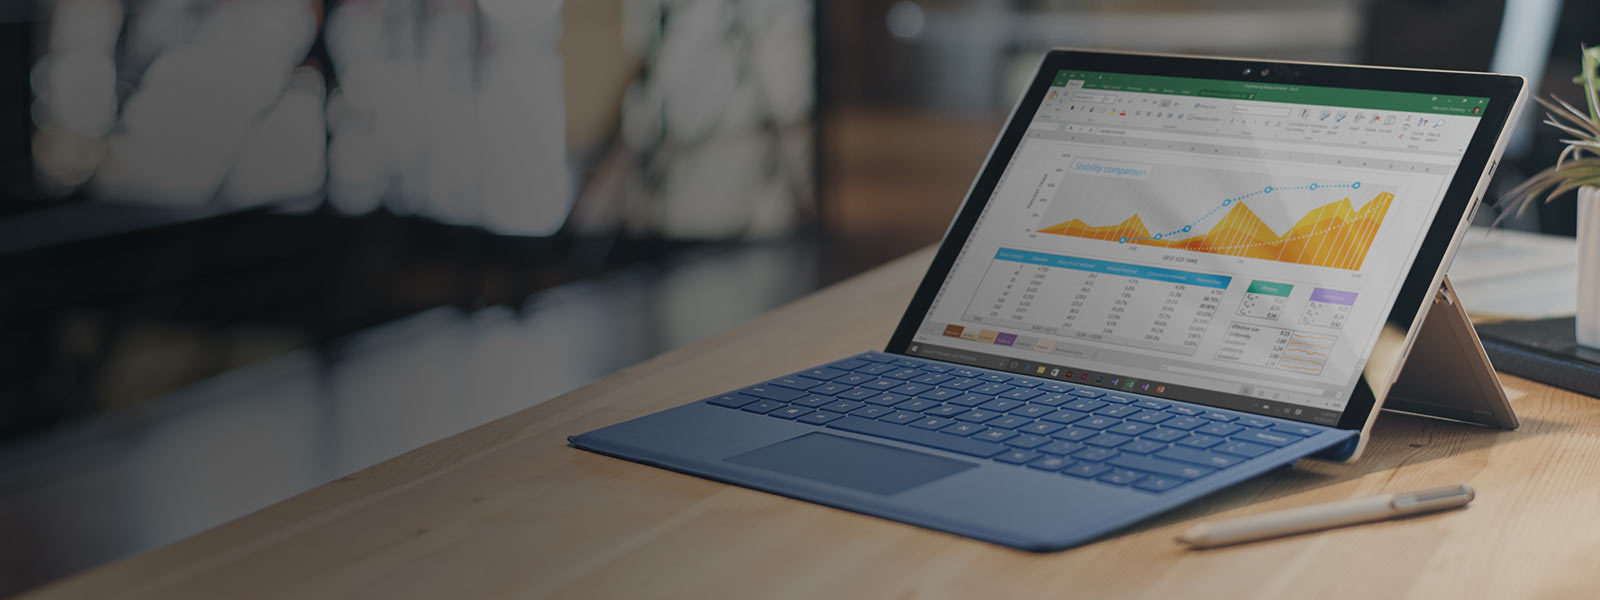 Surface Pro 4, learn more